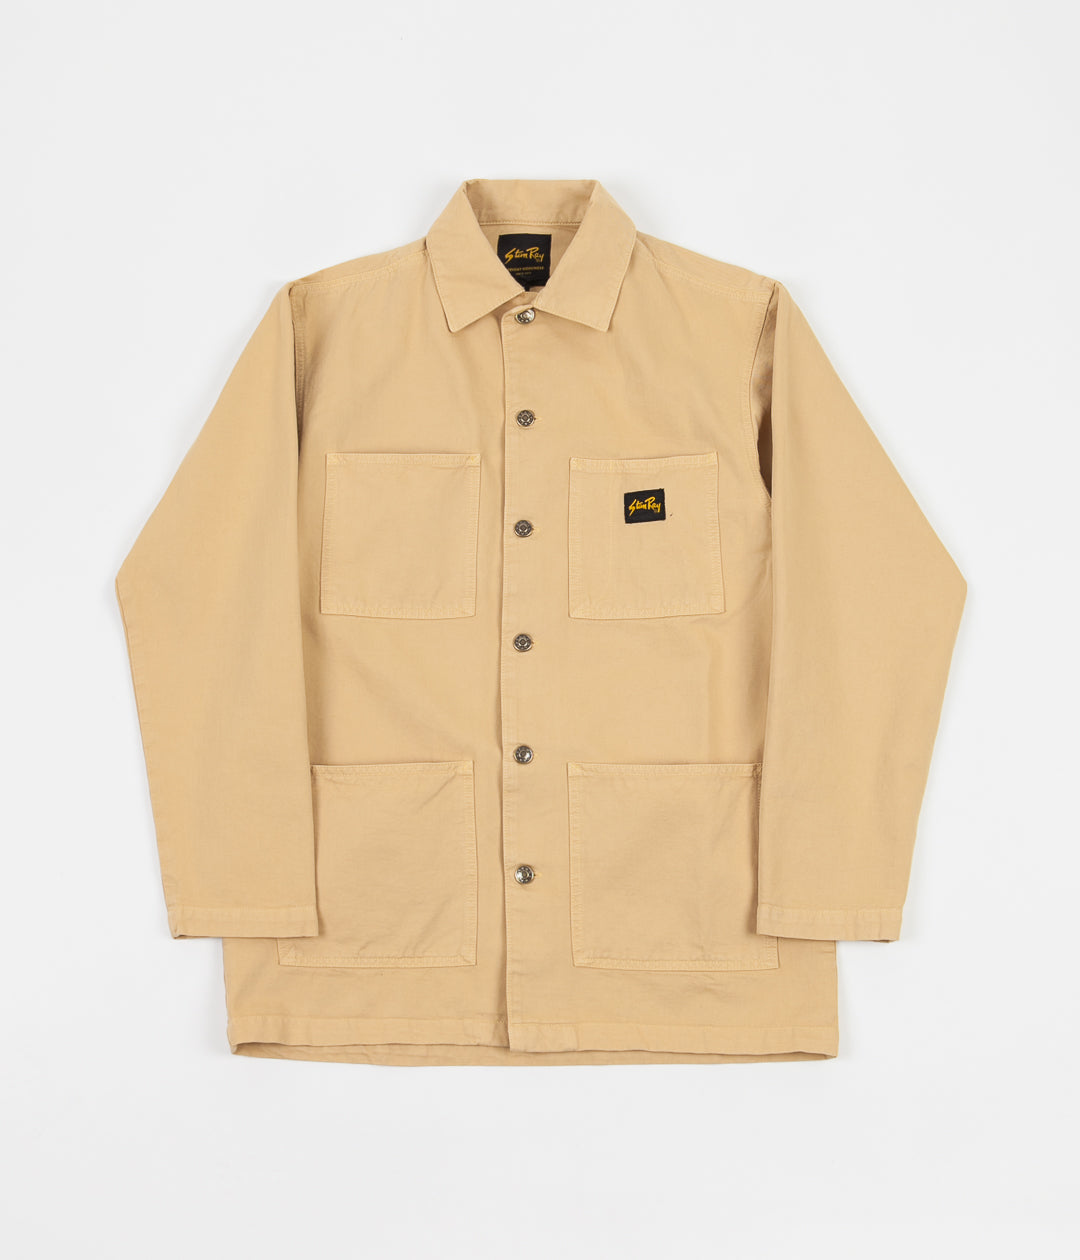 Stan Ray Shop Jacket - Sand Overdye Natural Drill